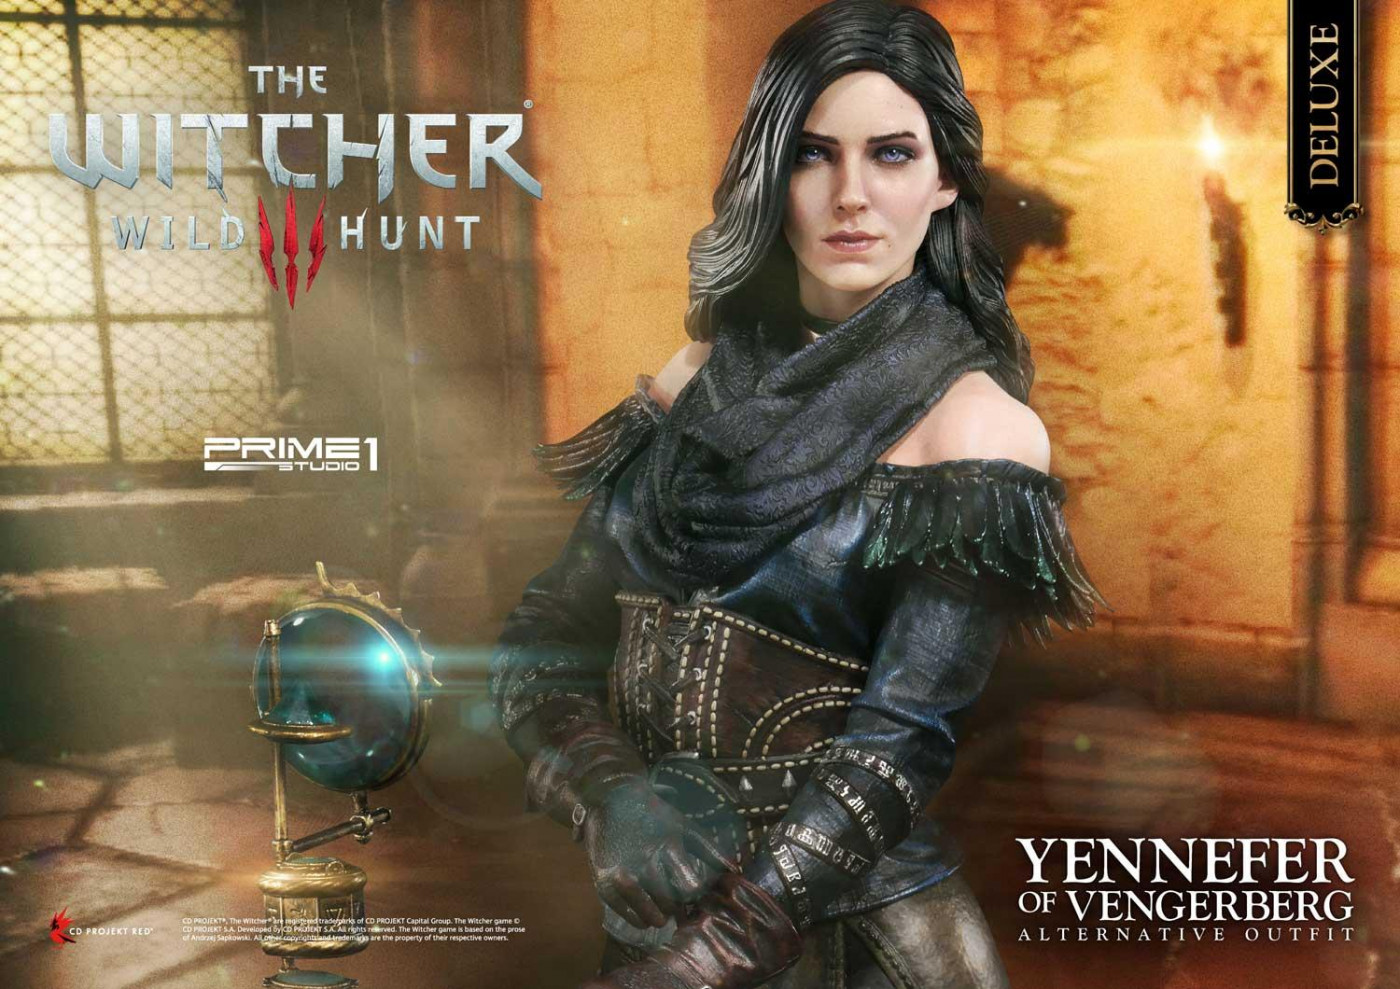 Premium Masterline The Witcher 3: Wild Hunt Yennefer of Vengerberg Alternative Outfit Deluxe Version